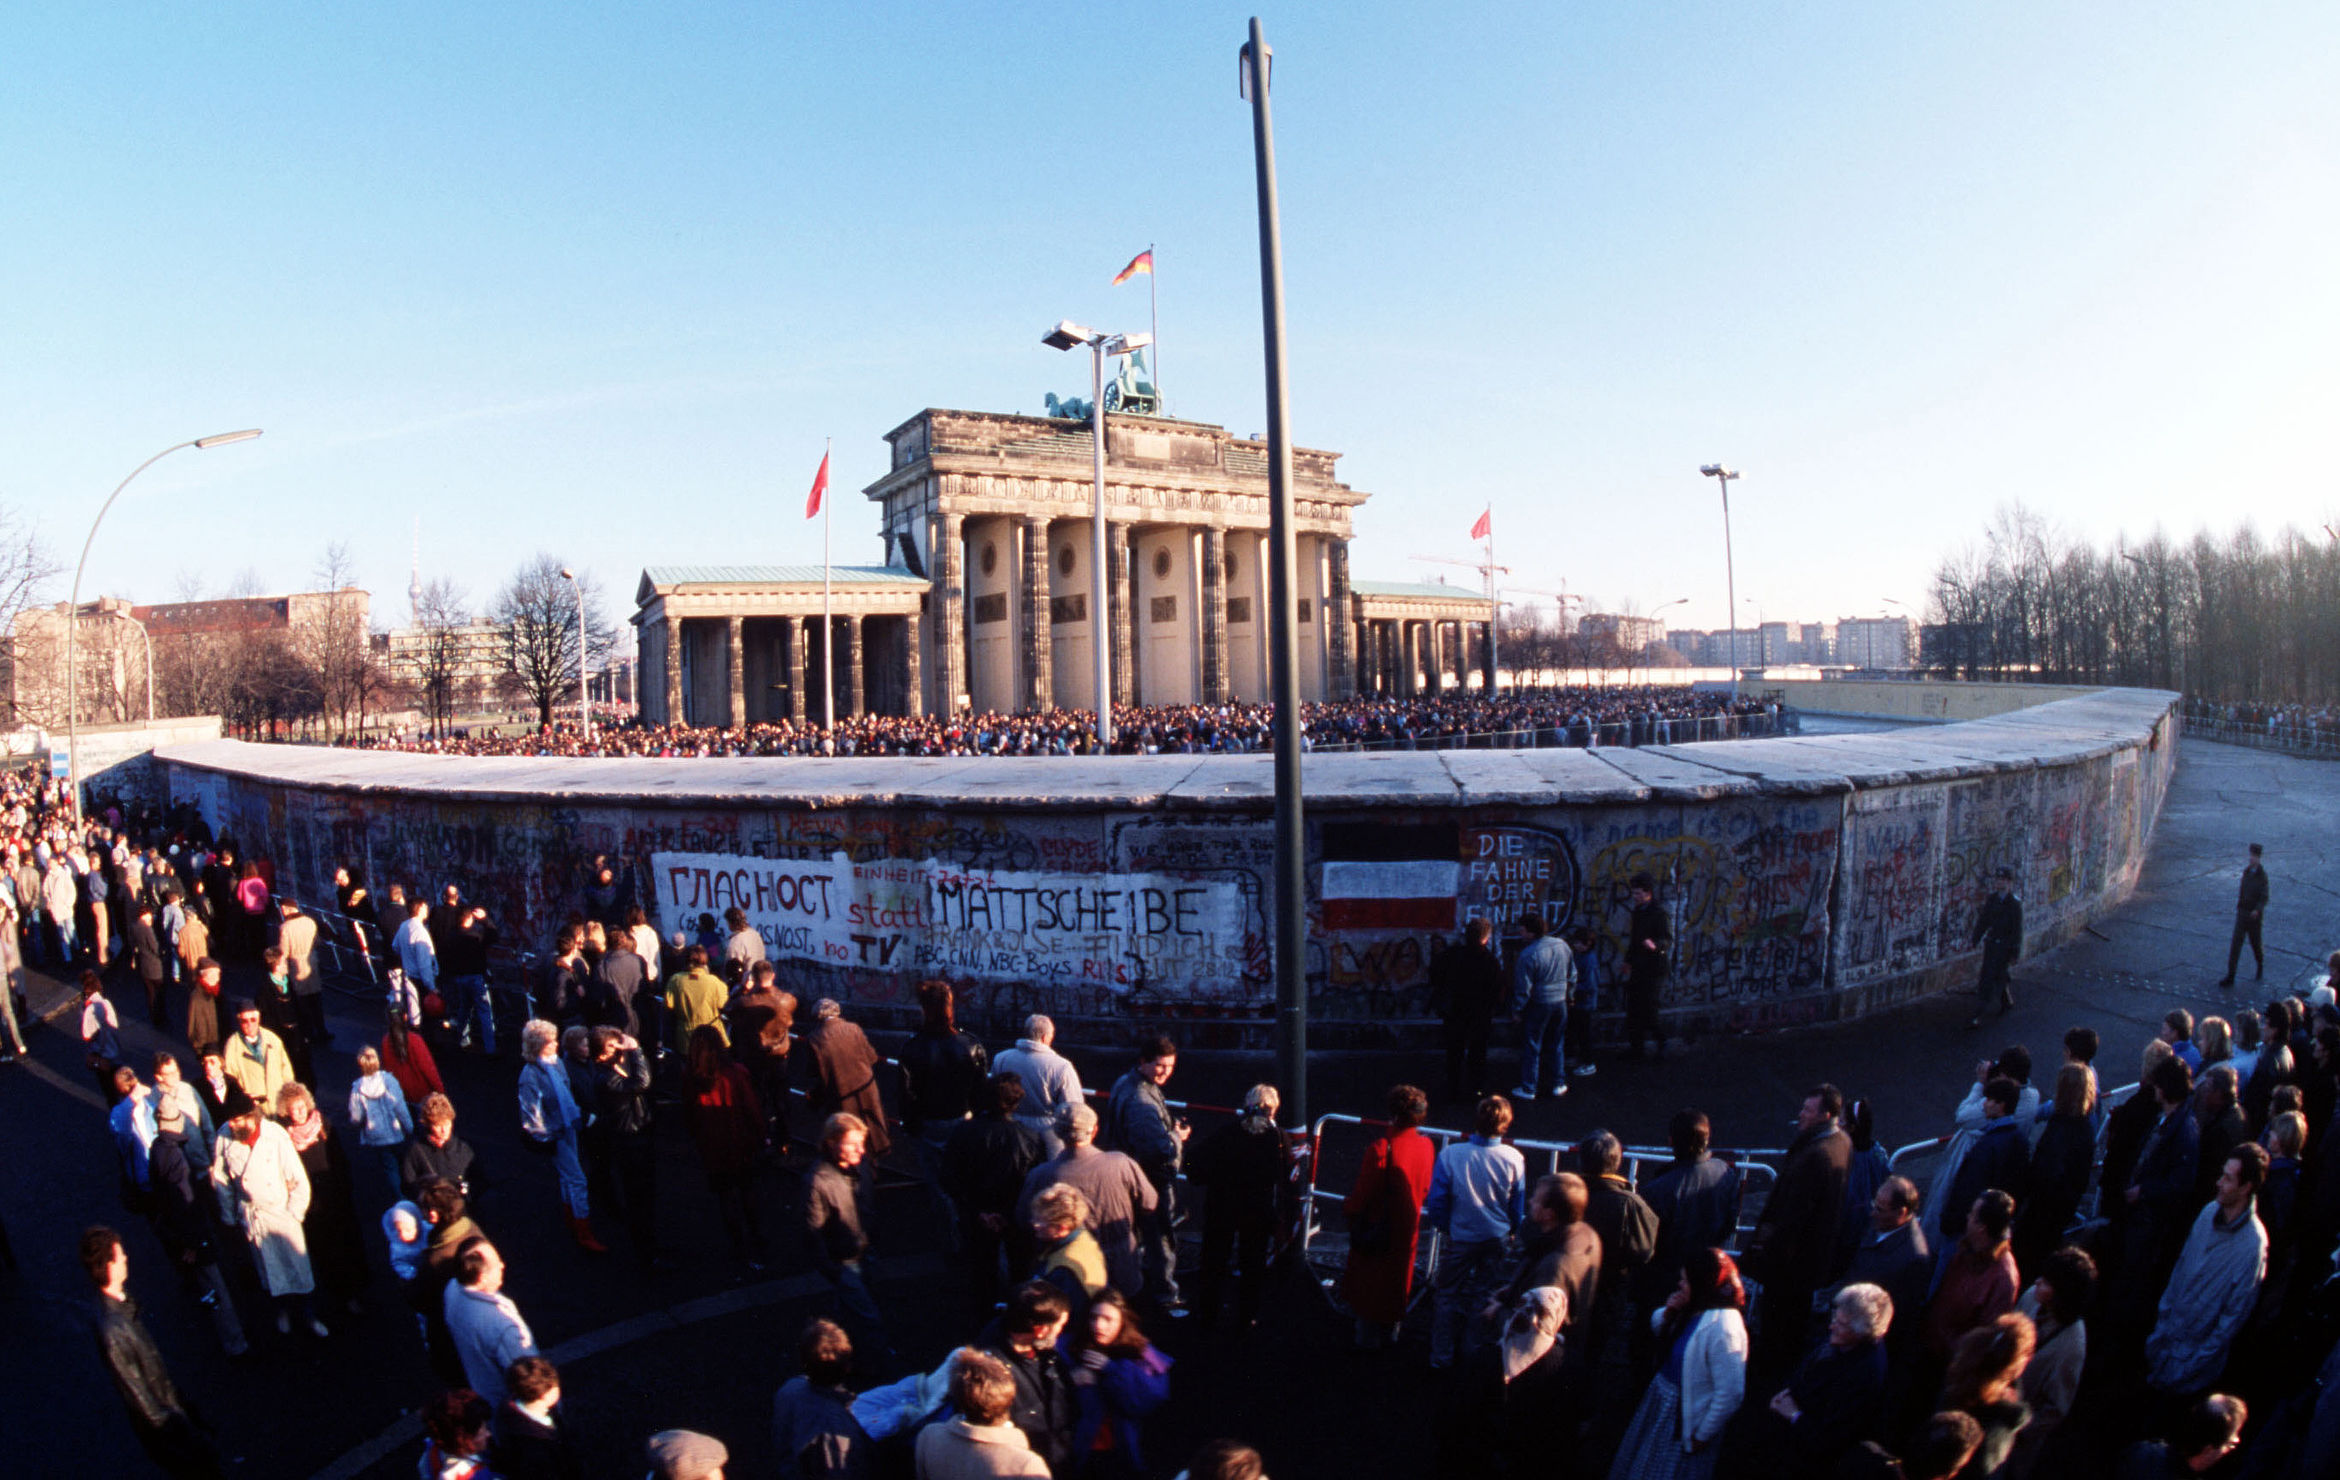 Das Brandenburger Tor in Berlin am 1.12.1989